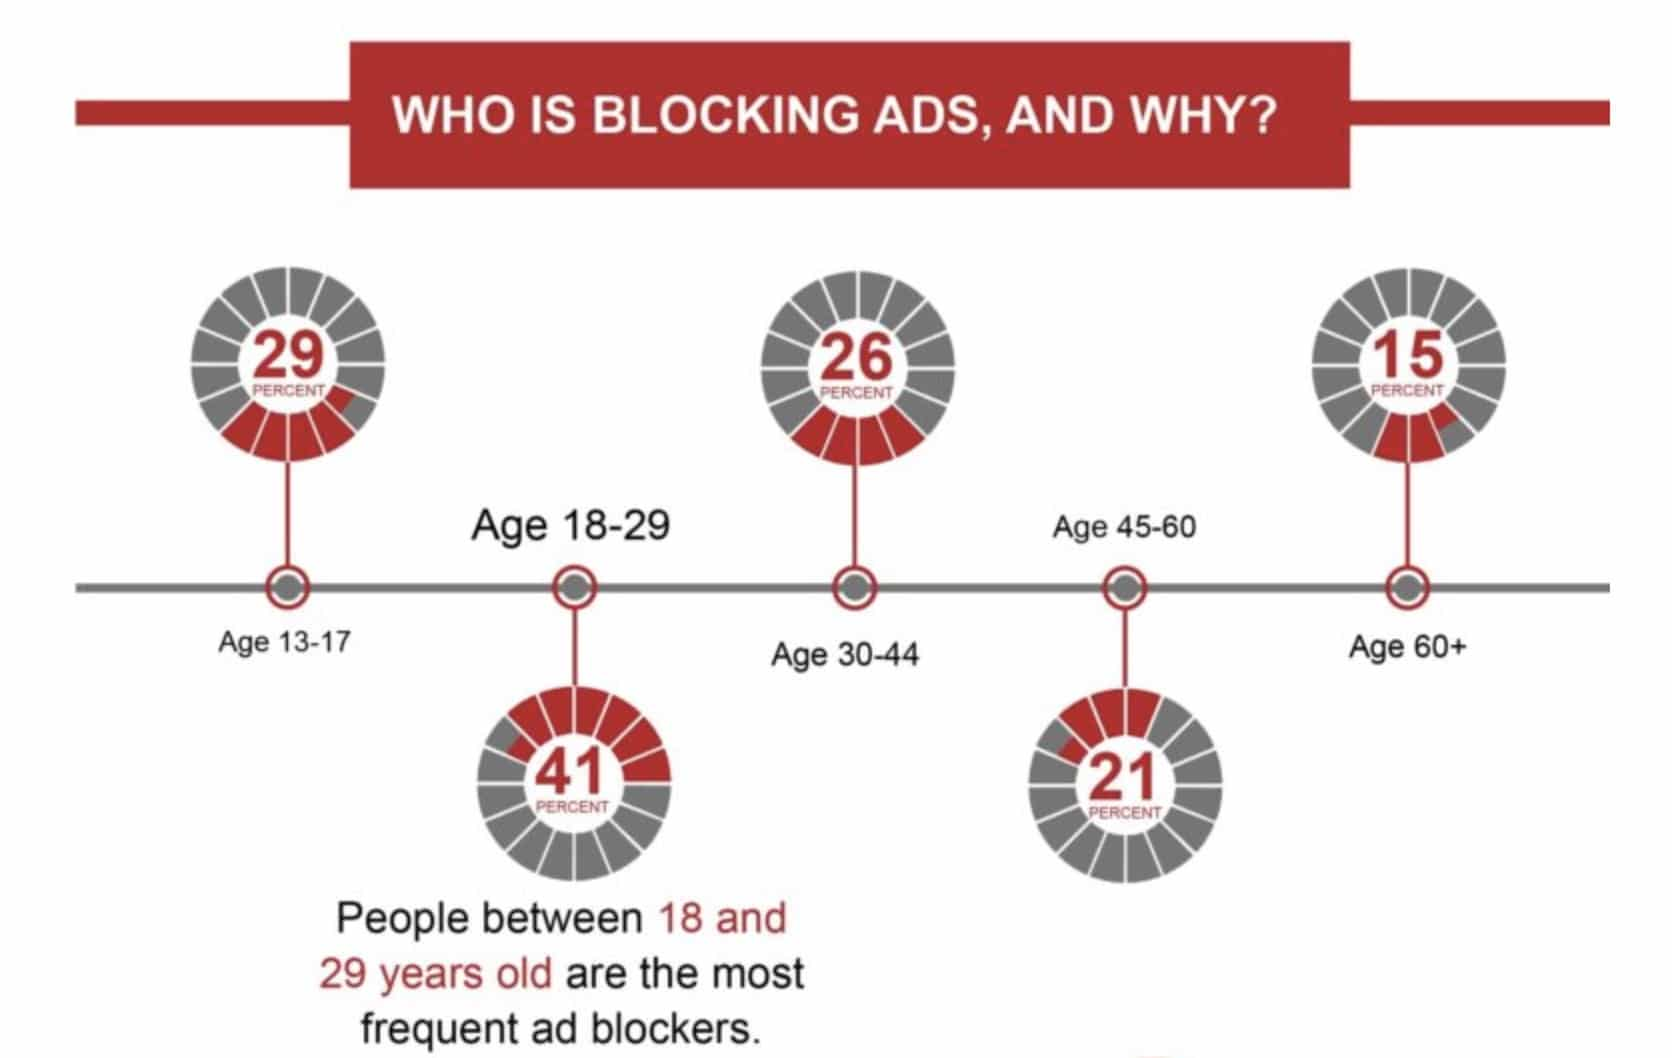 Who is blocking ads